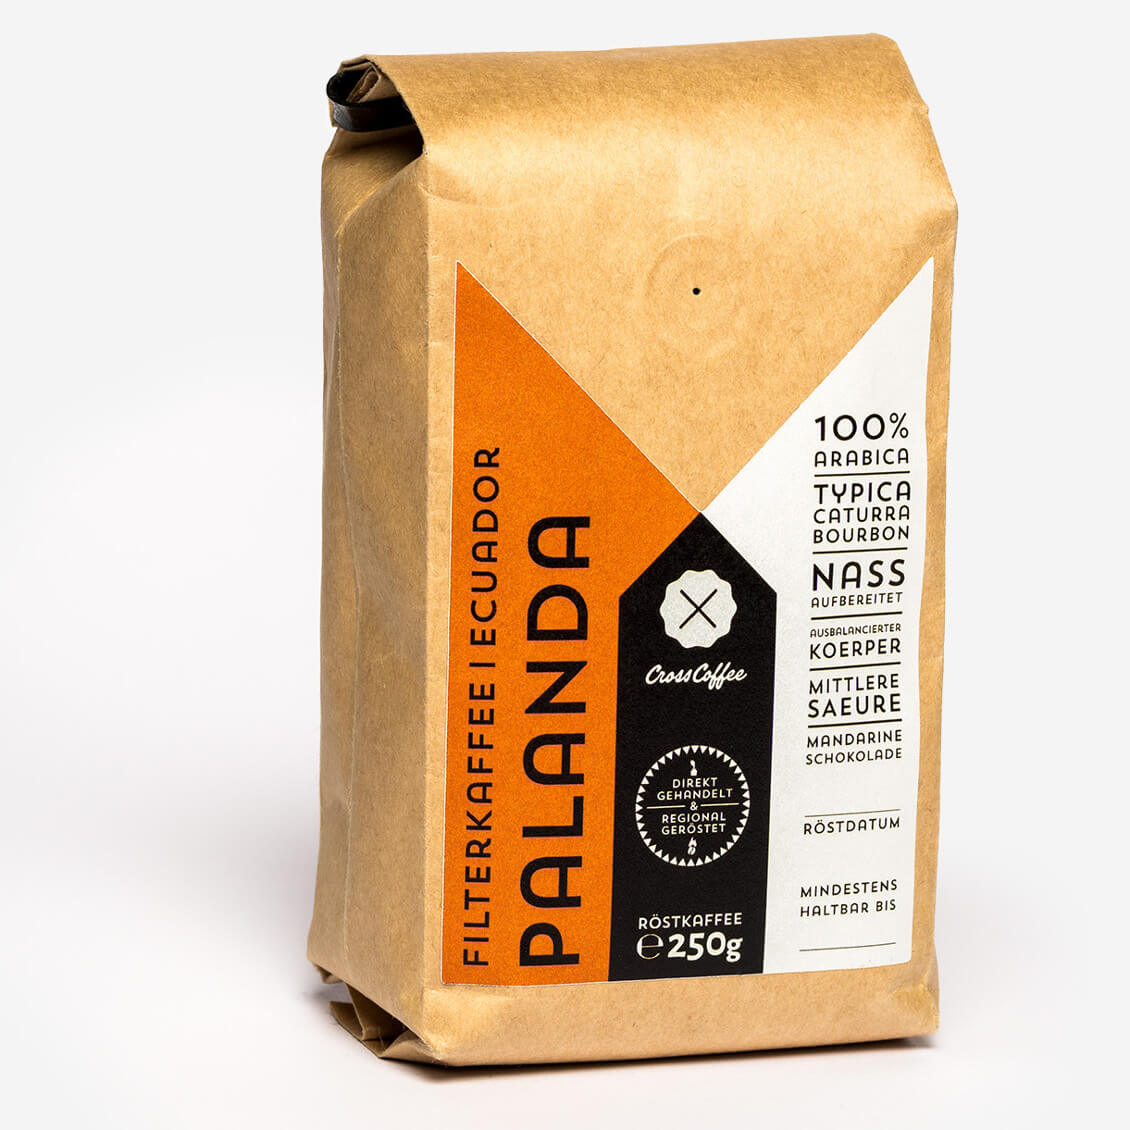 Produktfoto: Filterkaffee Palanda aus Ecuador, geröstetet von der Speciaty Coffee Kaffee Rösterei Cross Coffee | Transparent Trade Coffee